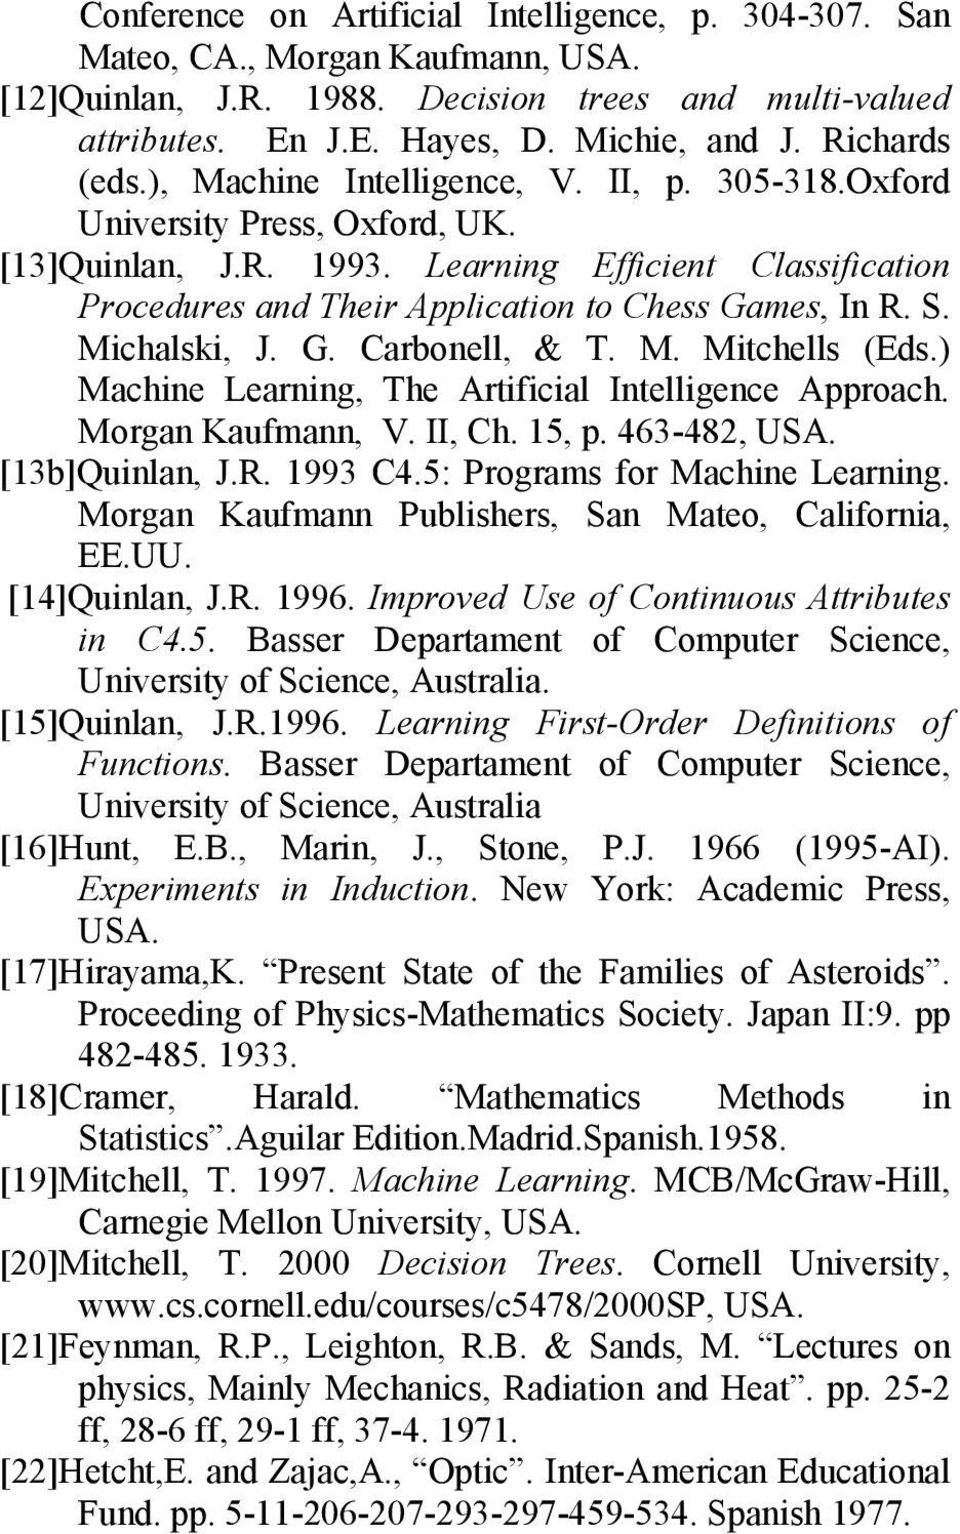 M. Mtchells (Eds.) Machne Learnng, The Artfcal Intellgence Approach. Morgan Kaufmann, V. II, Ch. 15, p. 463-482, USA. [13b]Qunlan, J.R. 1993 C4.5: Programs for Machne Learnng.